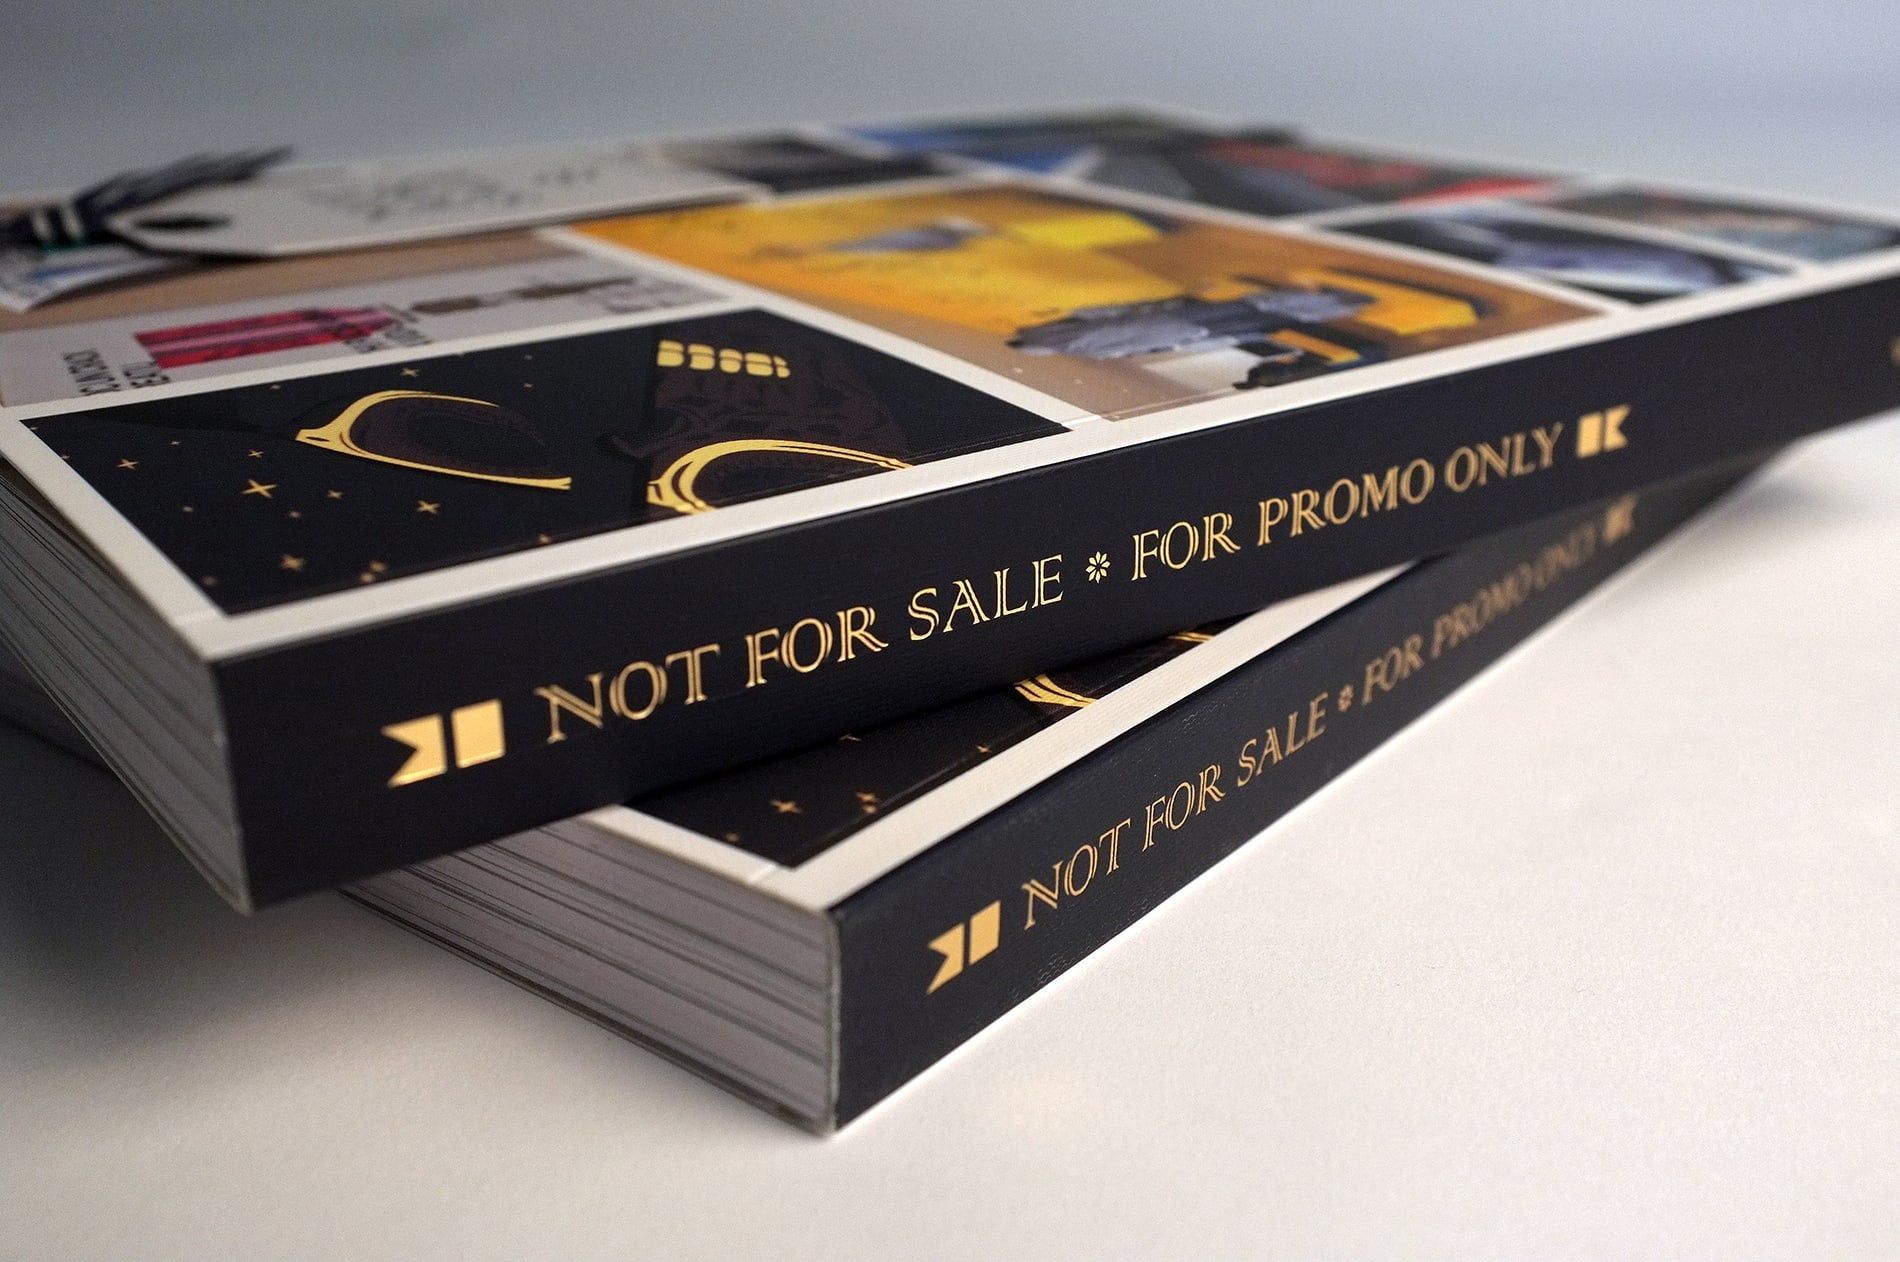 Not For Sale • For Promo Only